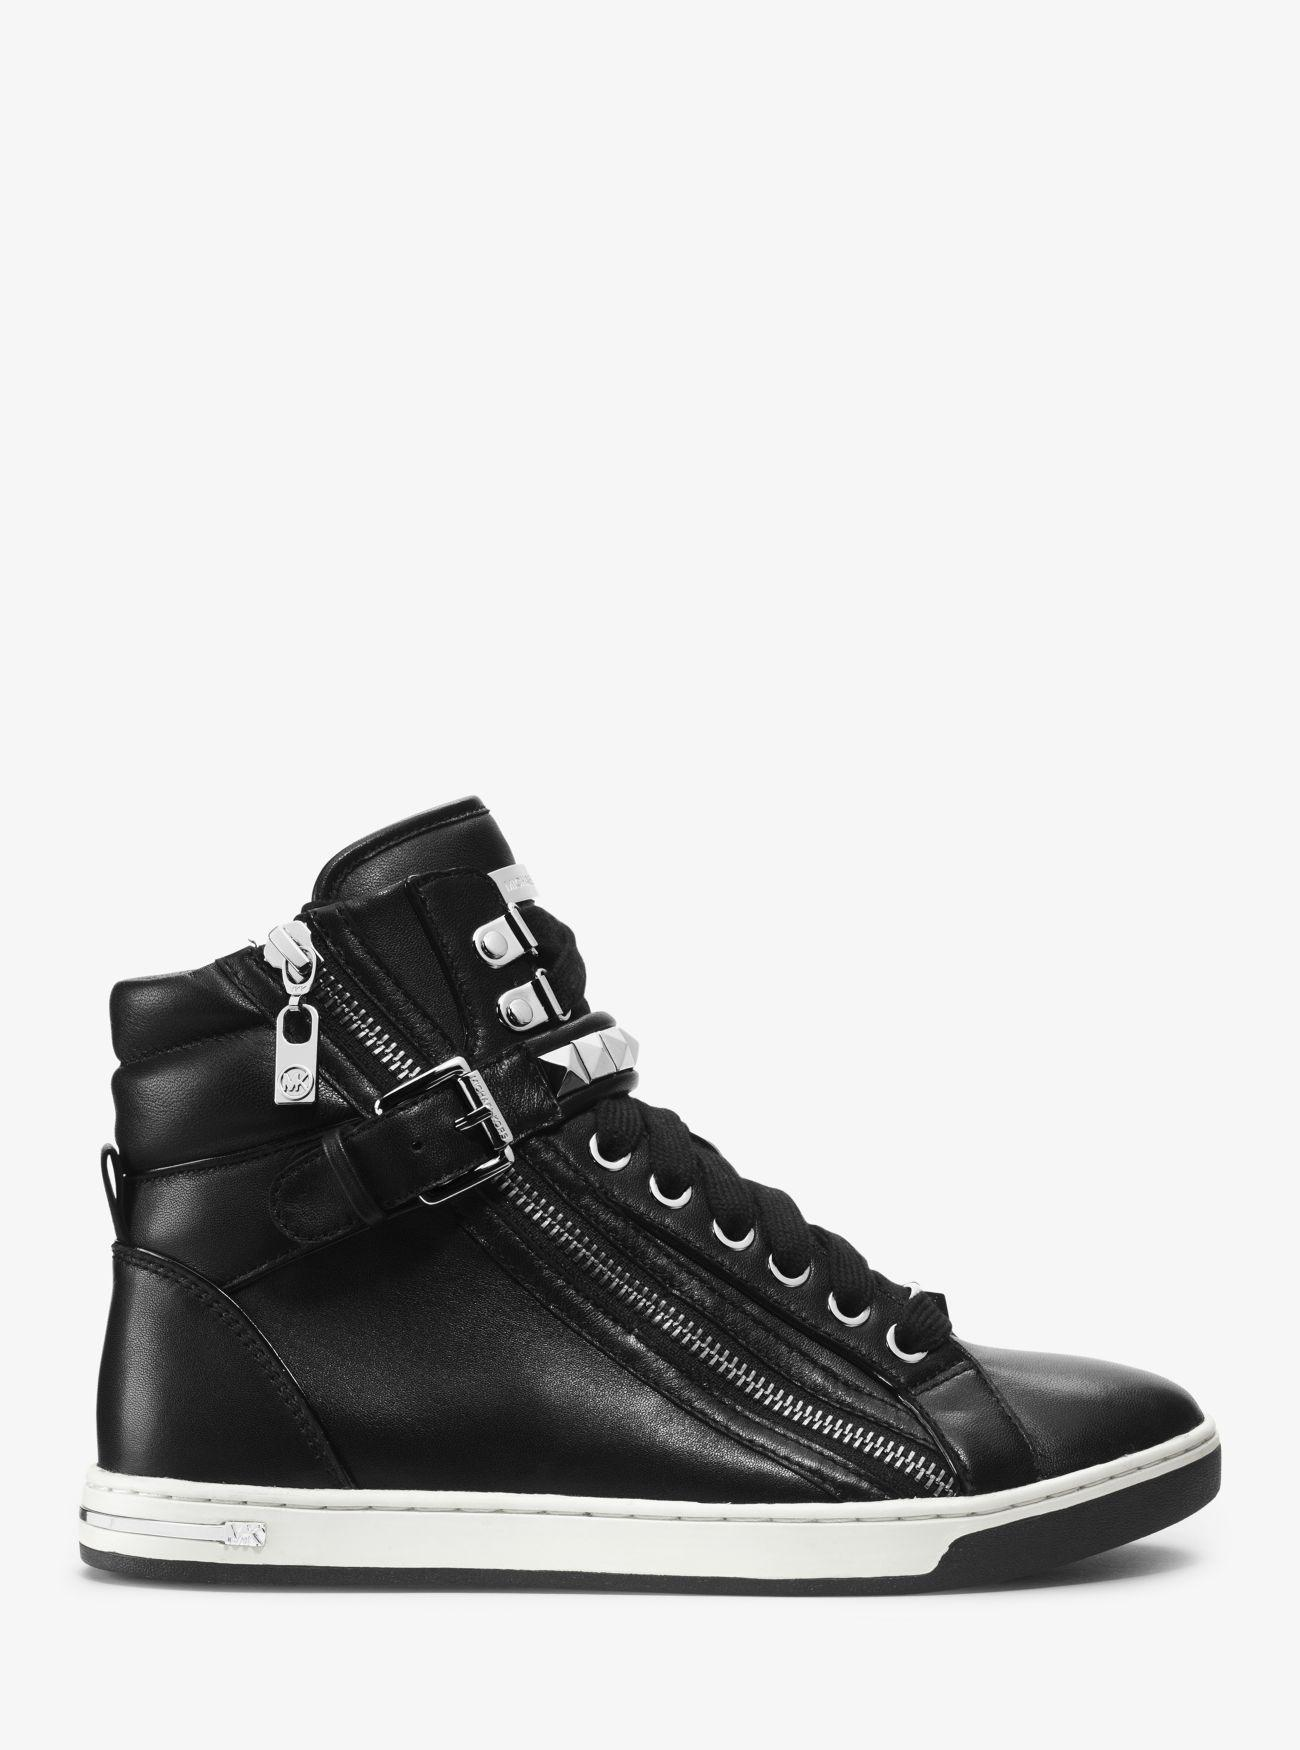 Michael Kors Glam Studded Patent-leather High-top Sneaker in Black